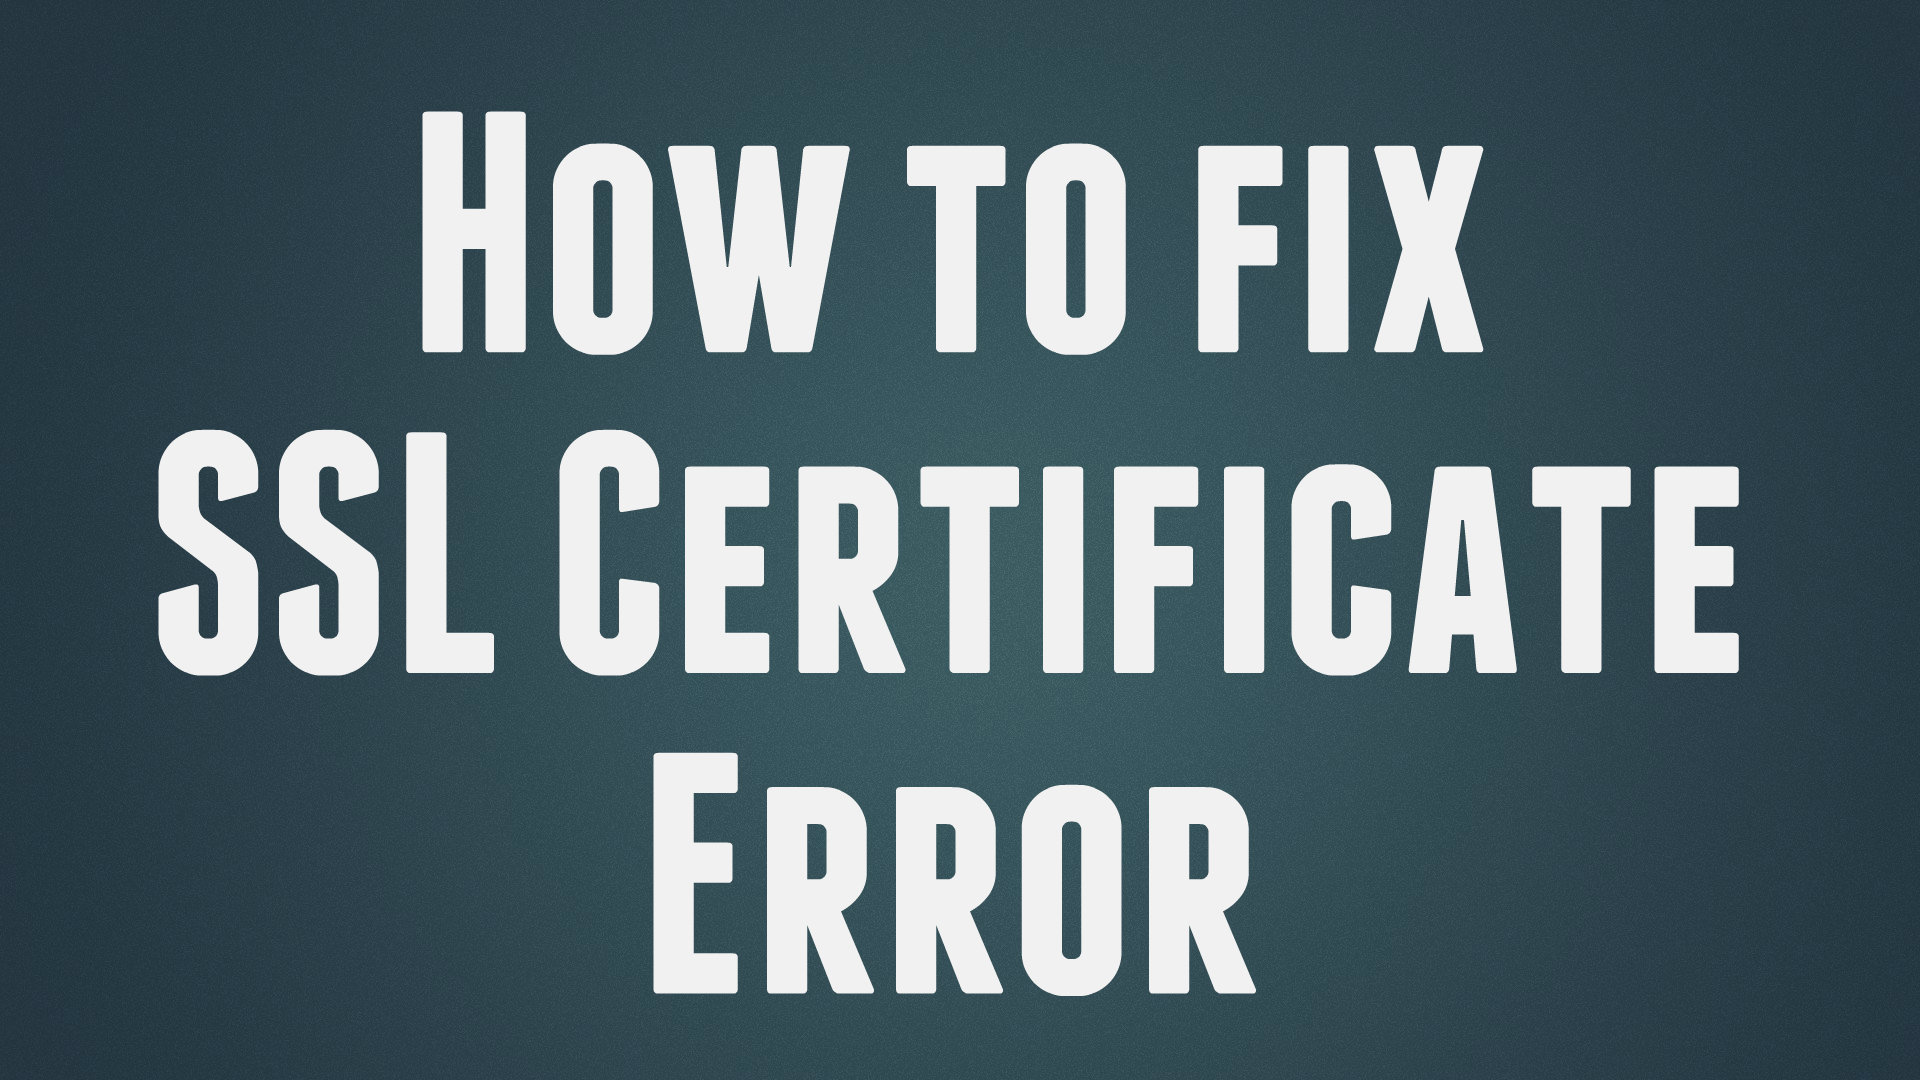 How To Fix Ssl Certificate Error In Google Chrome